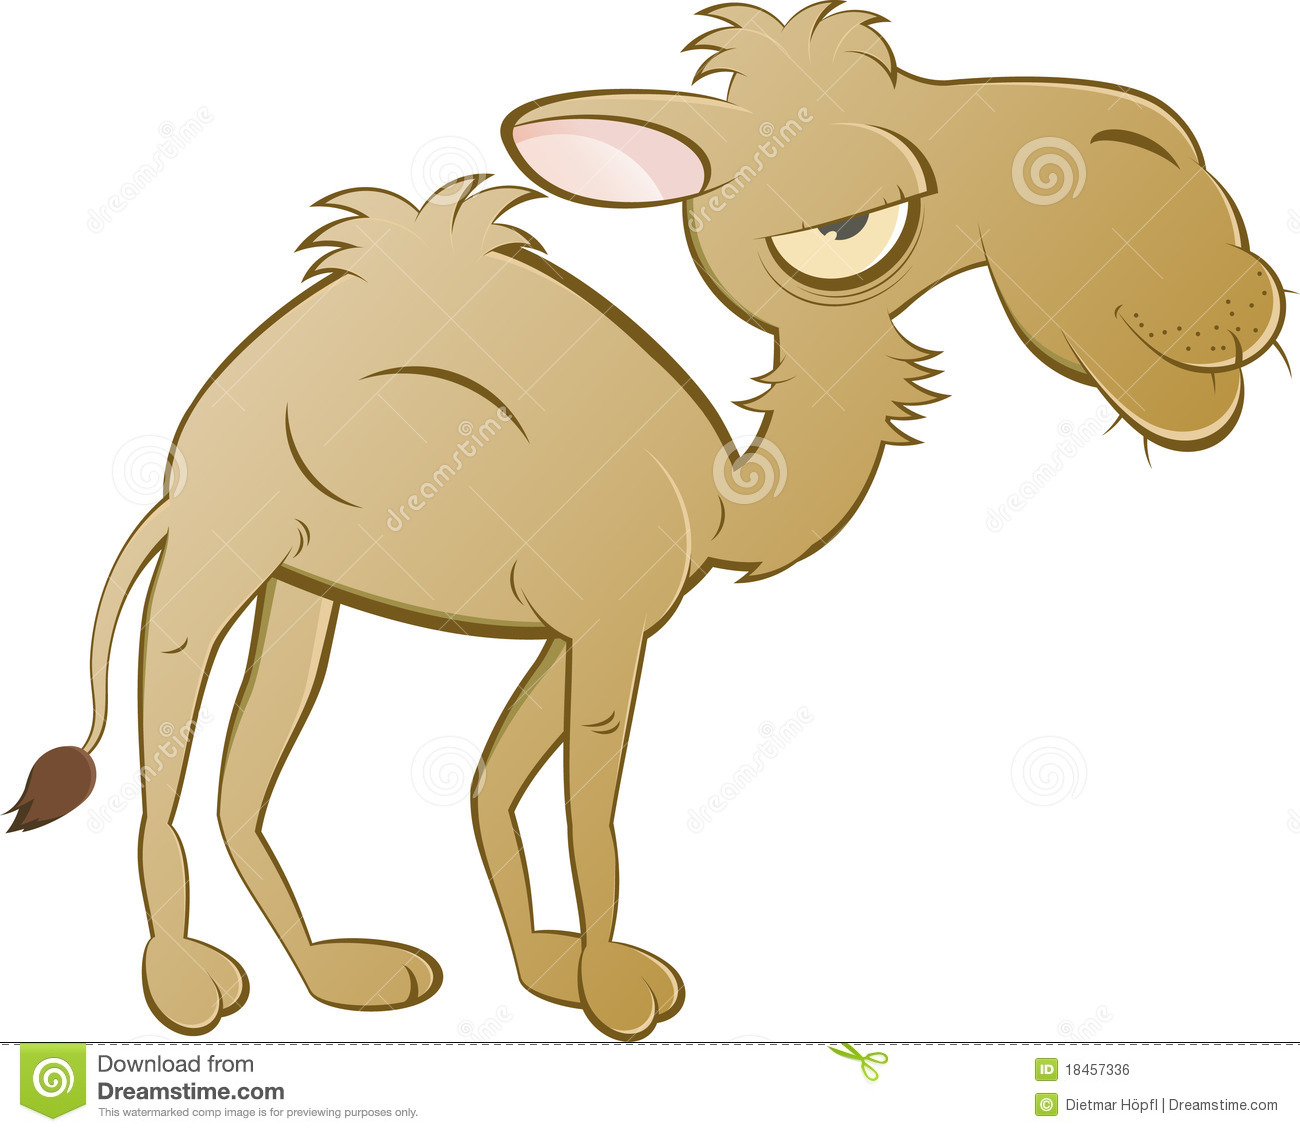 Cartoon Camel Royalty Free Stock Image - Image: 18457336